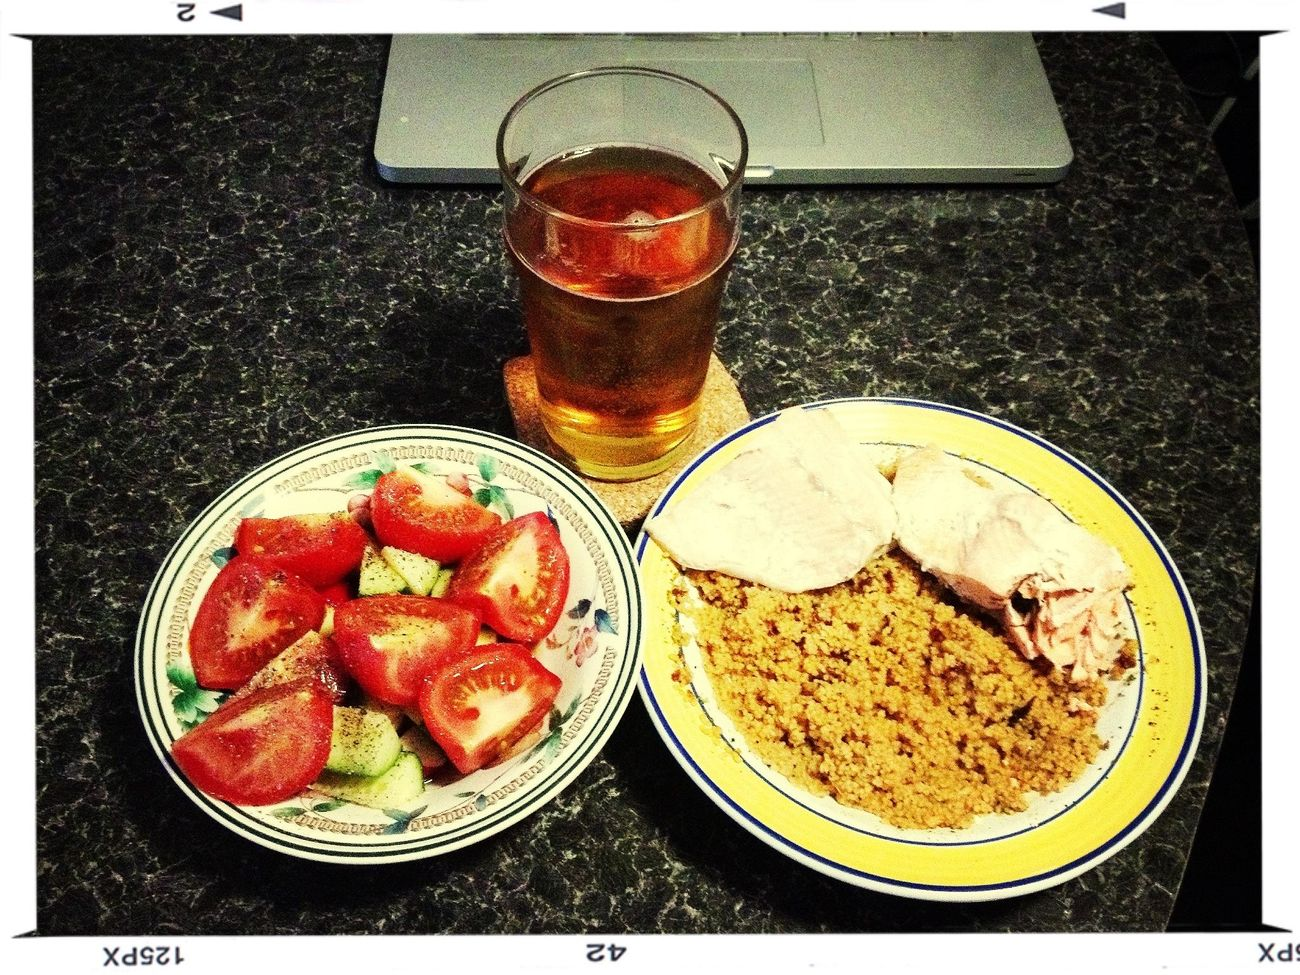 Poached salmon, cous cous with sun-dried tomatoes & garlic, tomato and cucumber salad with a soy sauce, rice vinegar & sesame oil dressing.